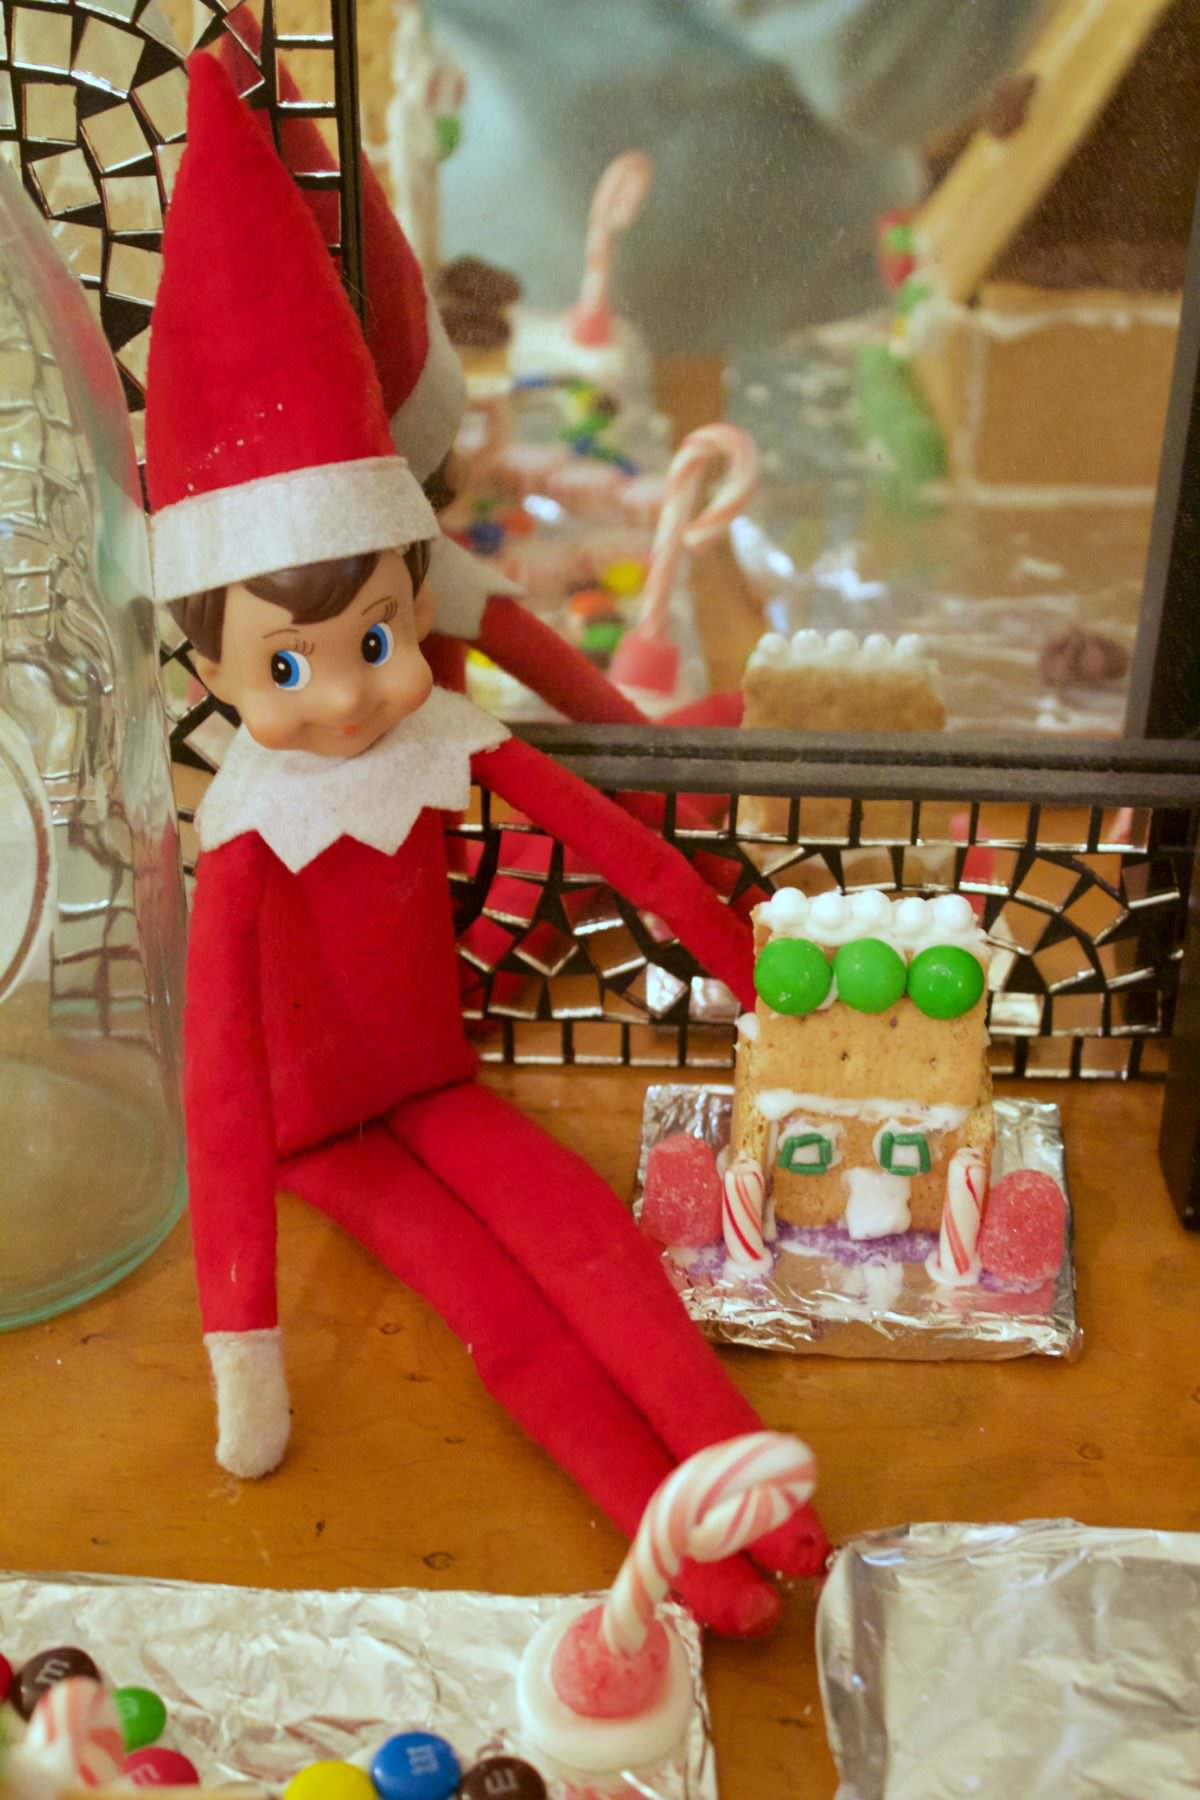 Elf on the shelf with a Gingerbread house